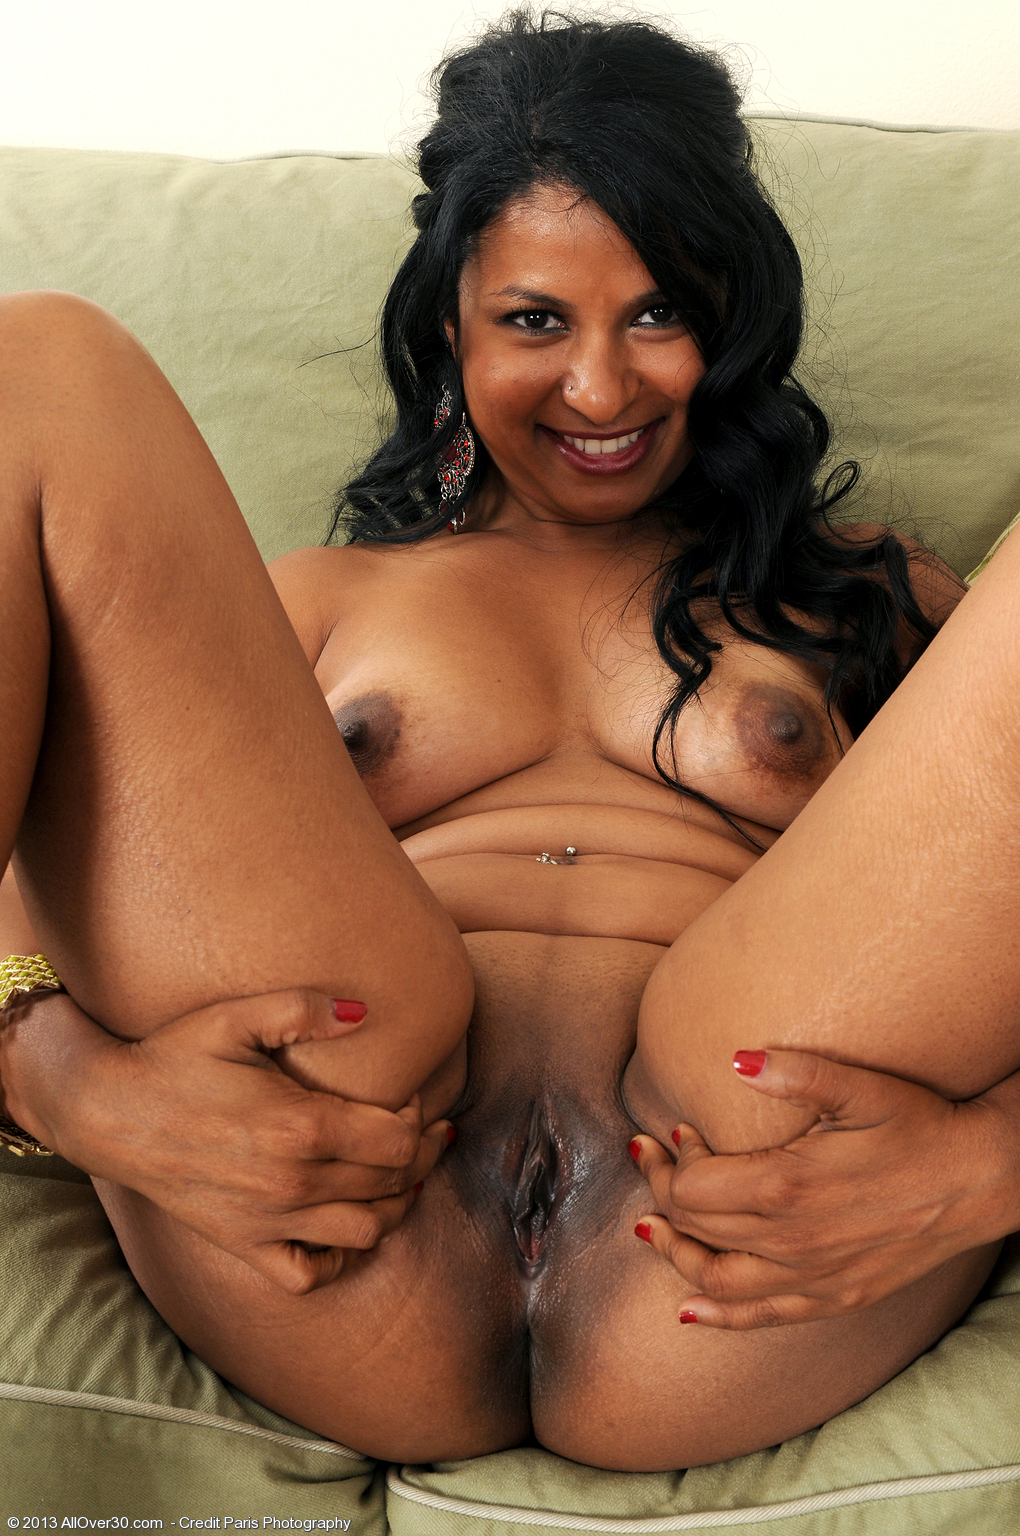 Consider, Ebony mom pussy spread for that